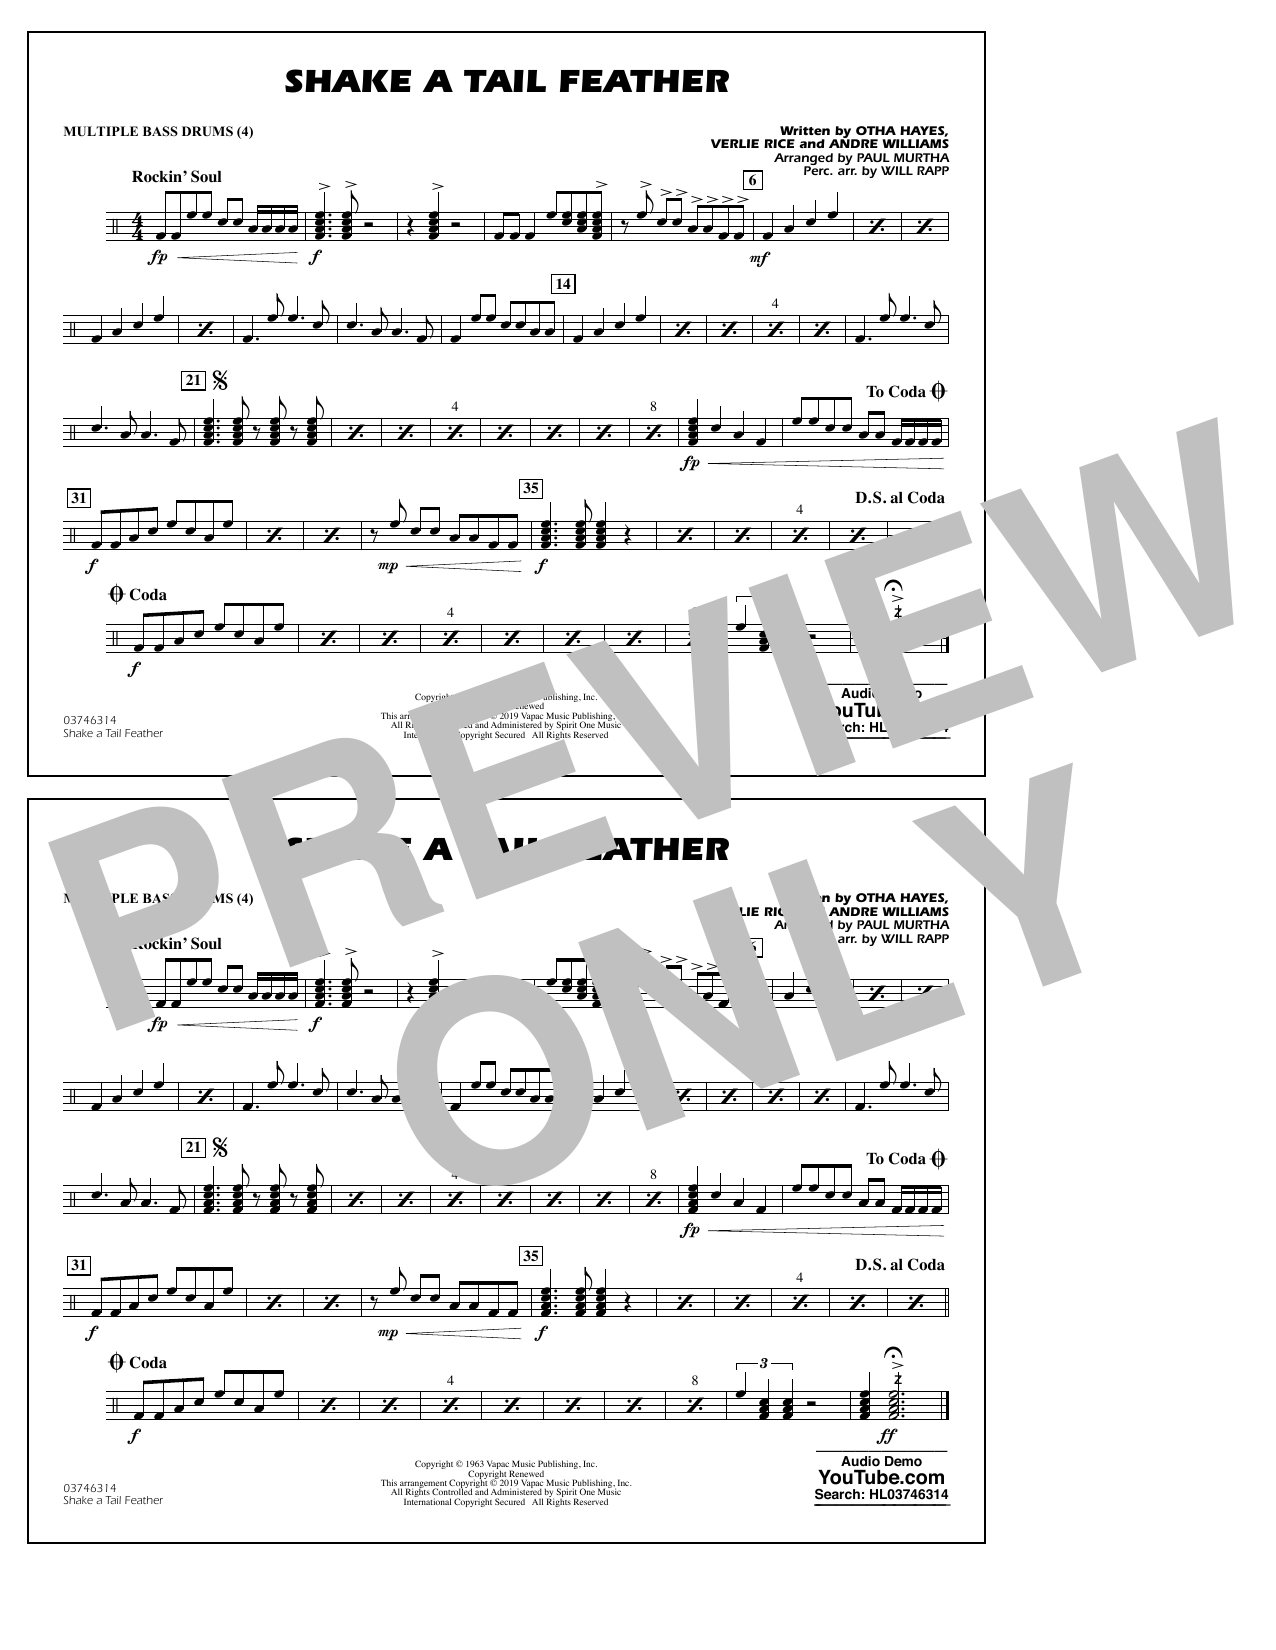 Ray Charles Shake a Tail Feather (arr. Paul Murtha) - Multiple Bass Drums sheet music preview music notes and score for Marching Band including 1 page(s)